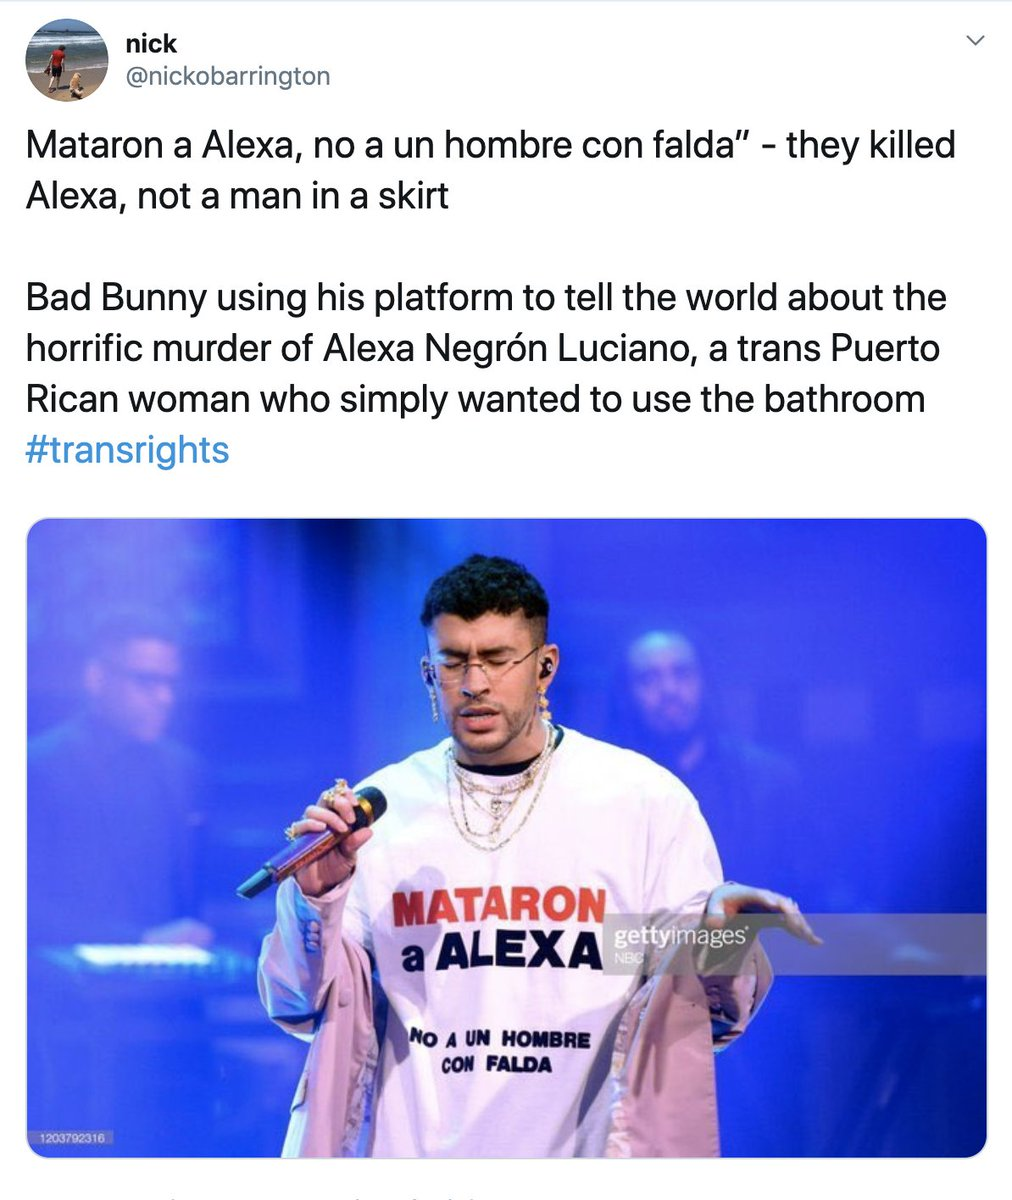 """Bad Bunny wore a shirt on """"Jimmy Fallon"""" to fight transphobia after a transgender woman was killed in Puerto Rico.  Neulisa Luciano Ruiz (Alexa) was killed after reportedly being harassed for using a women's restroom. Some media described her as a """"man dressed in a black skirt."""" <br>http://pic.twitter.com/RrkdaqyNse"""